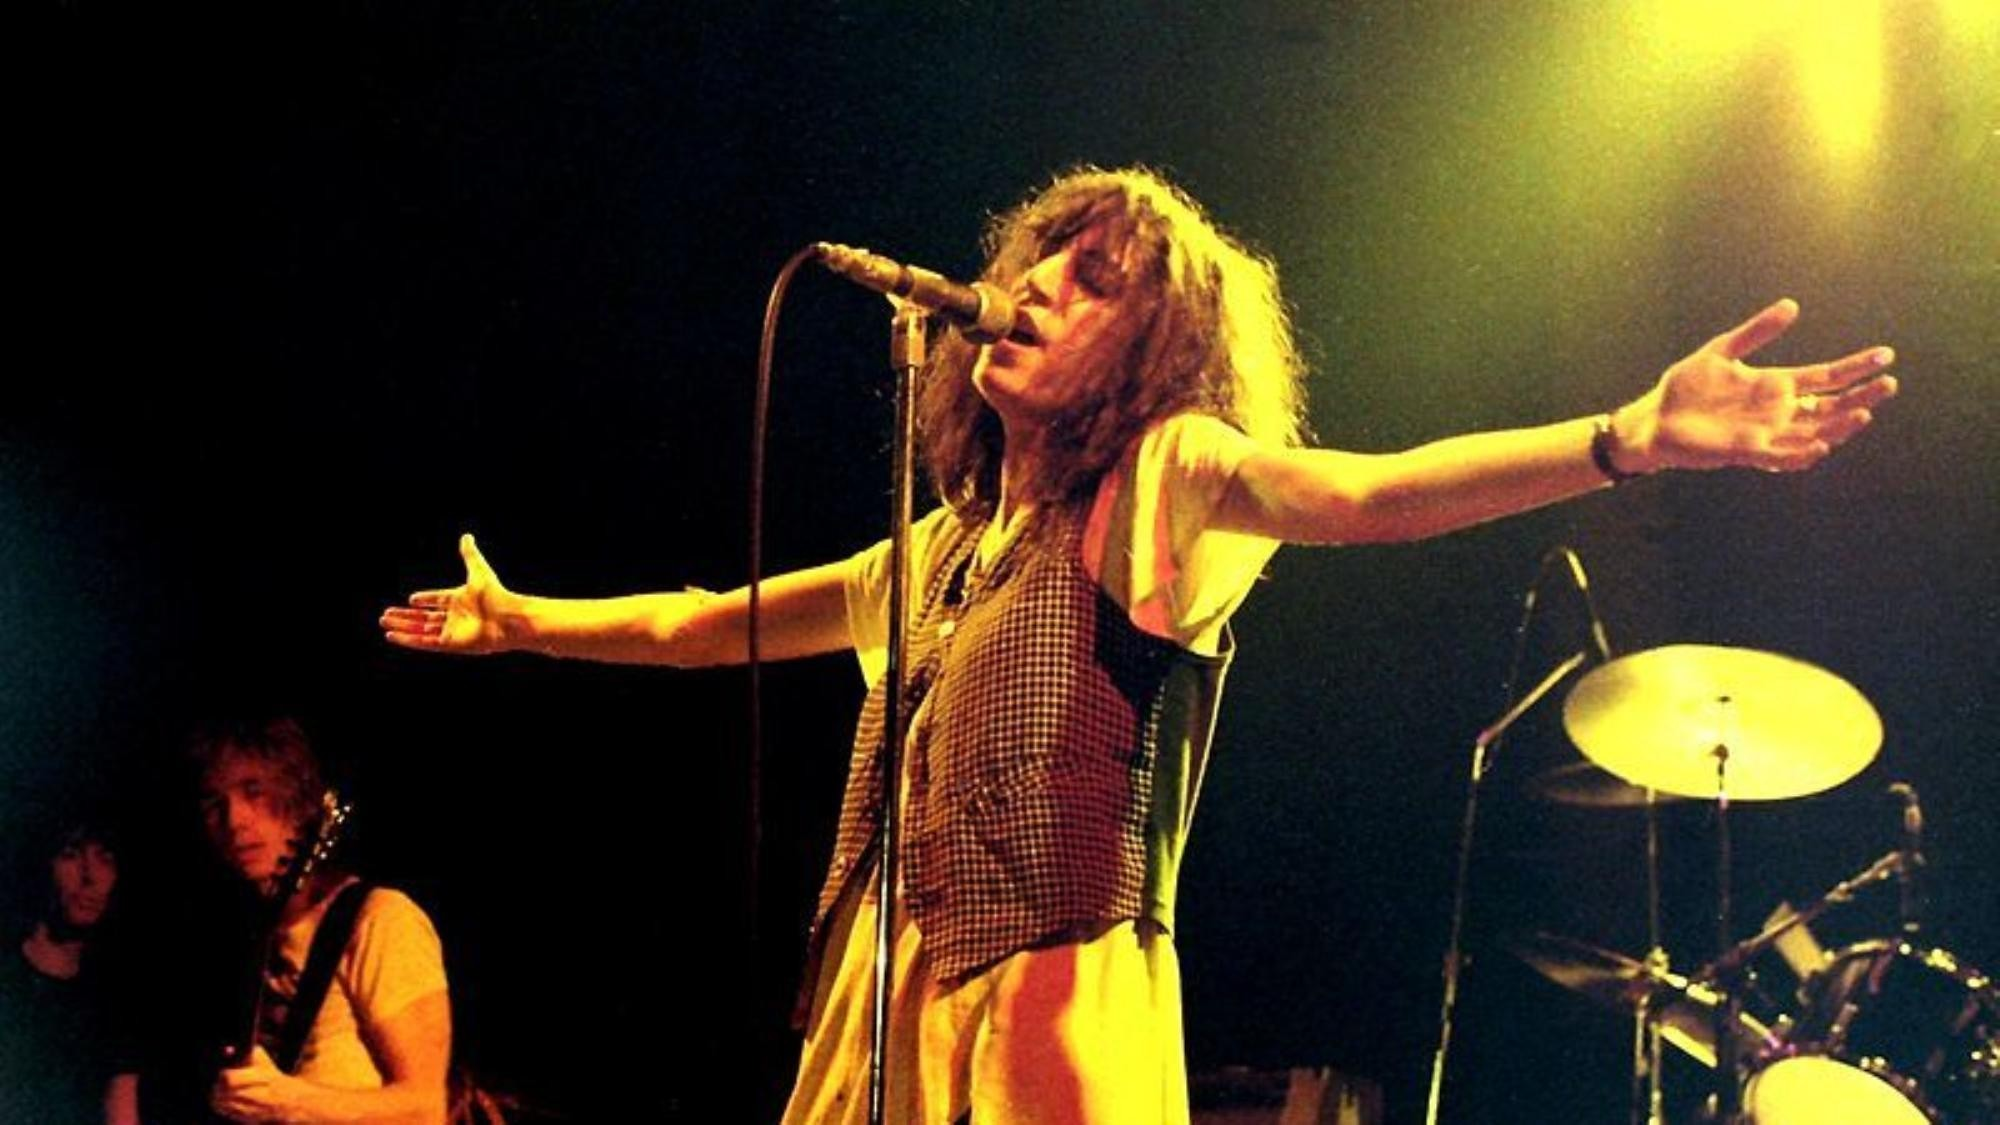 listen to patti smith's poetic tribute to nico